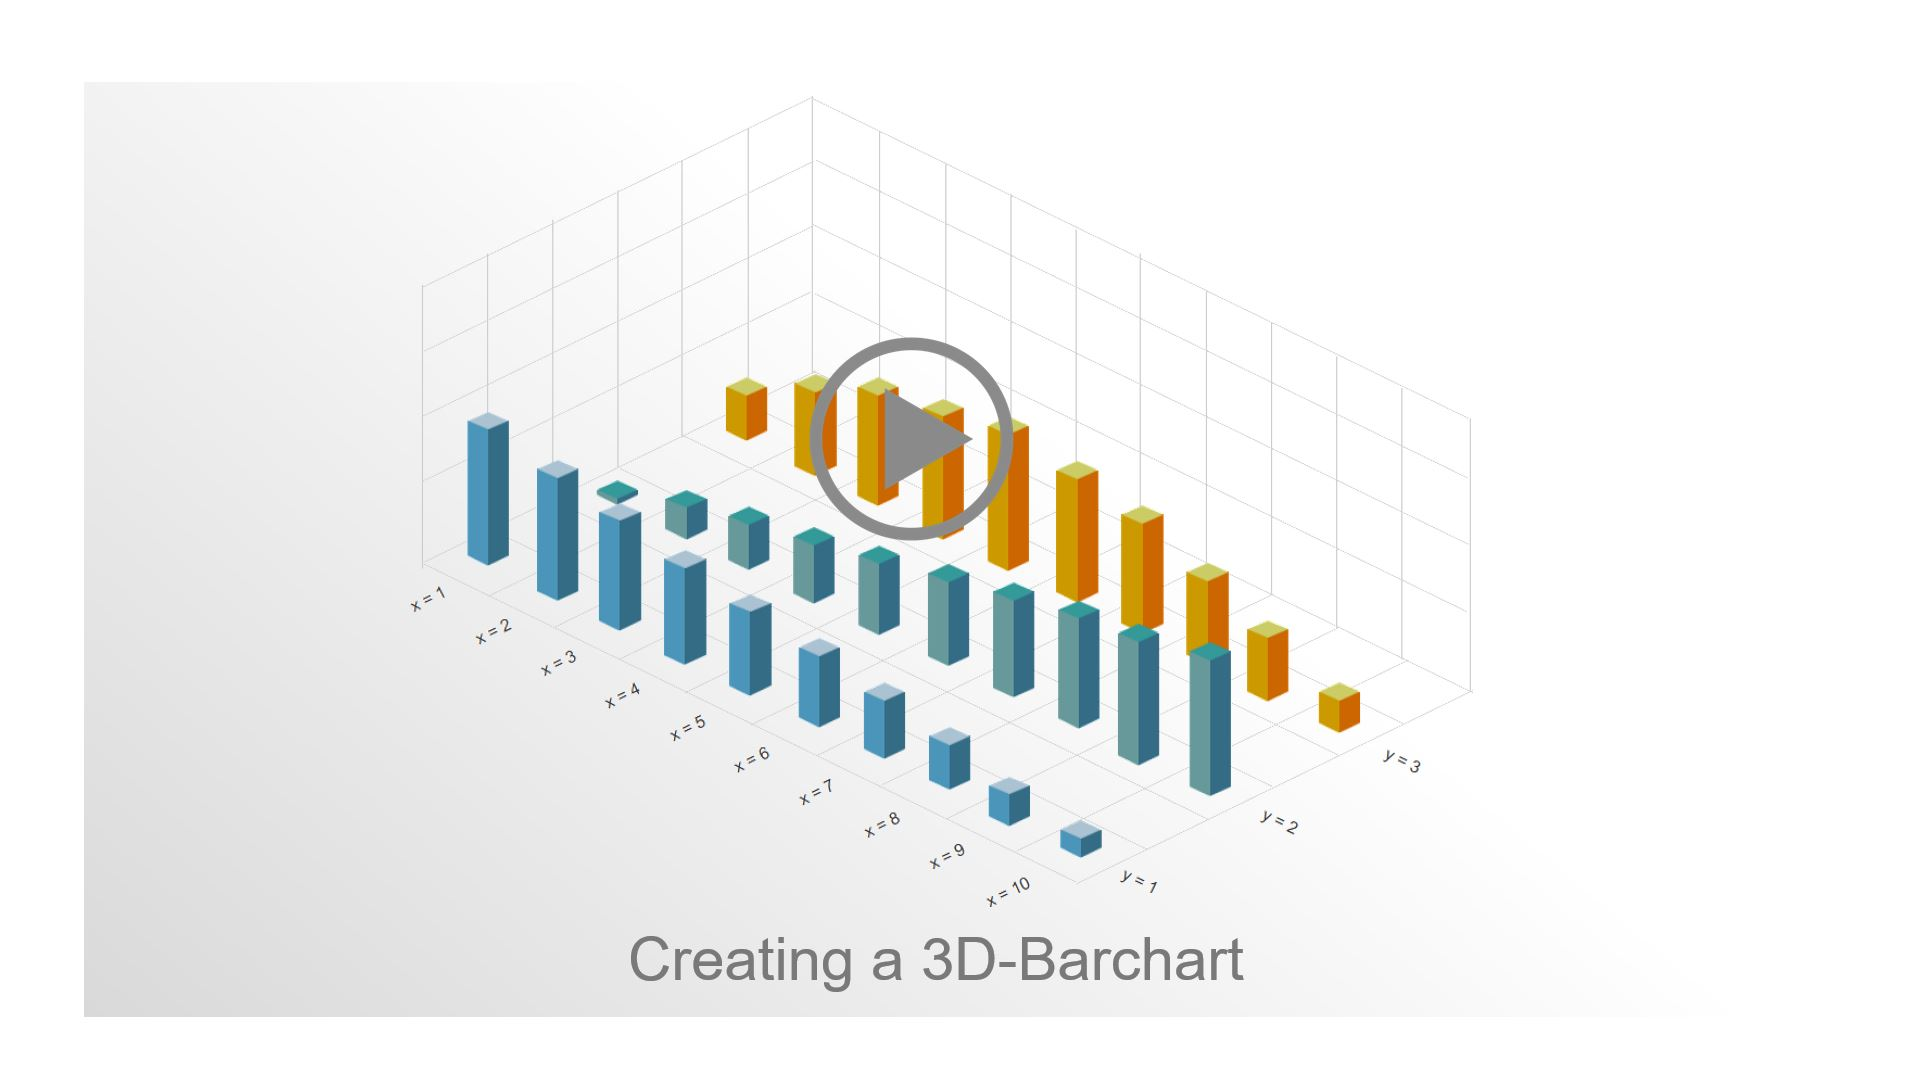 Creating a 3D chart in Axure, Tutorial